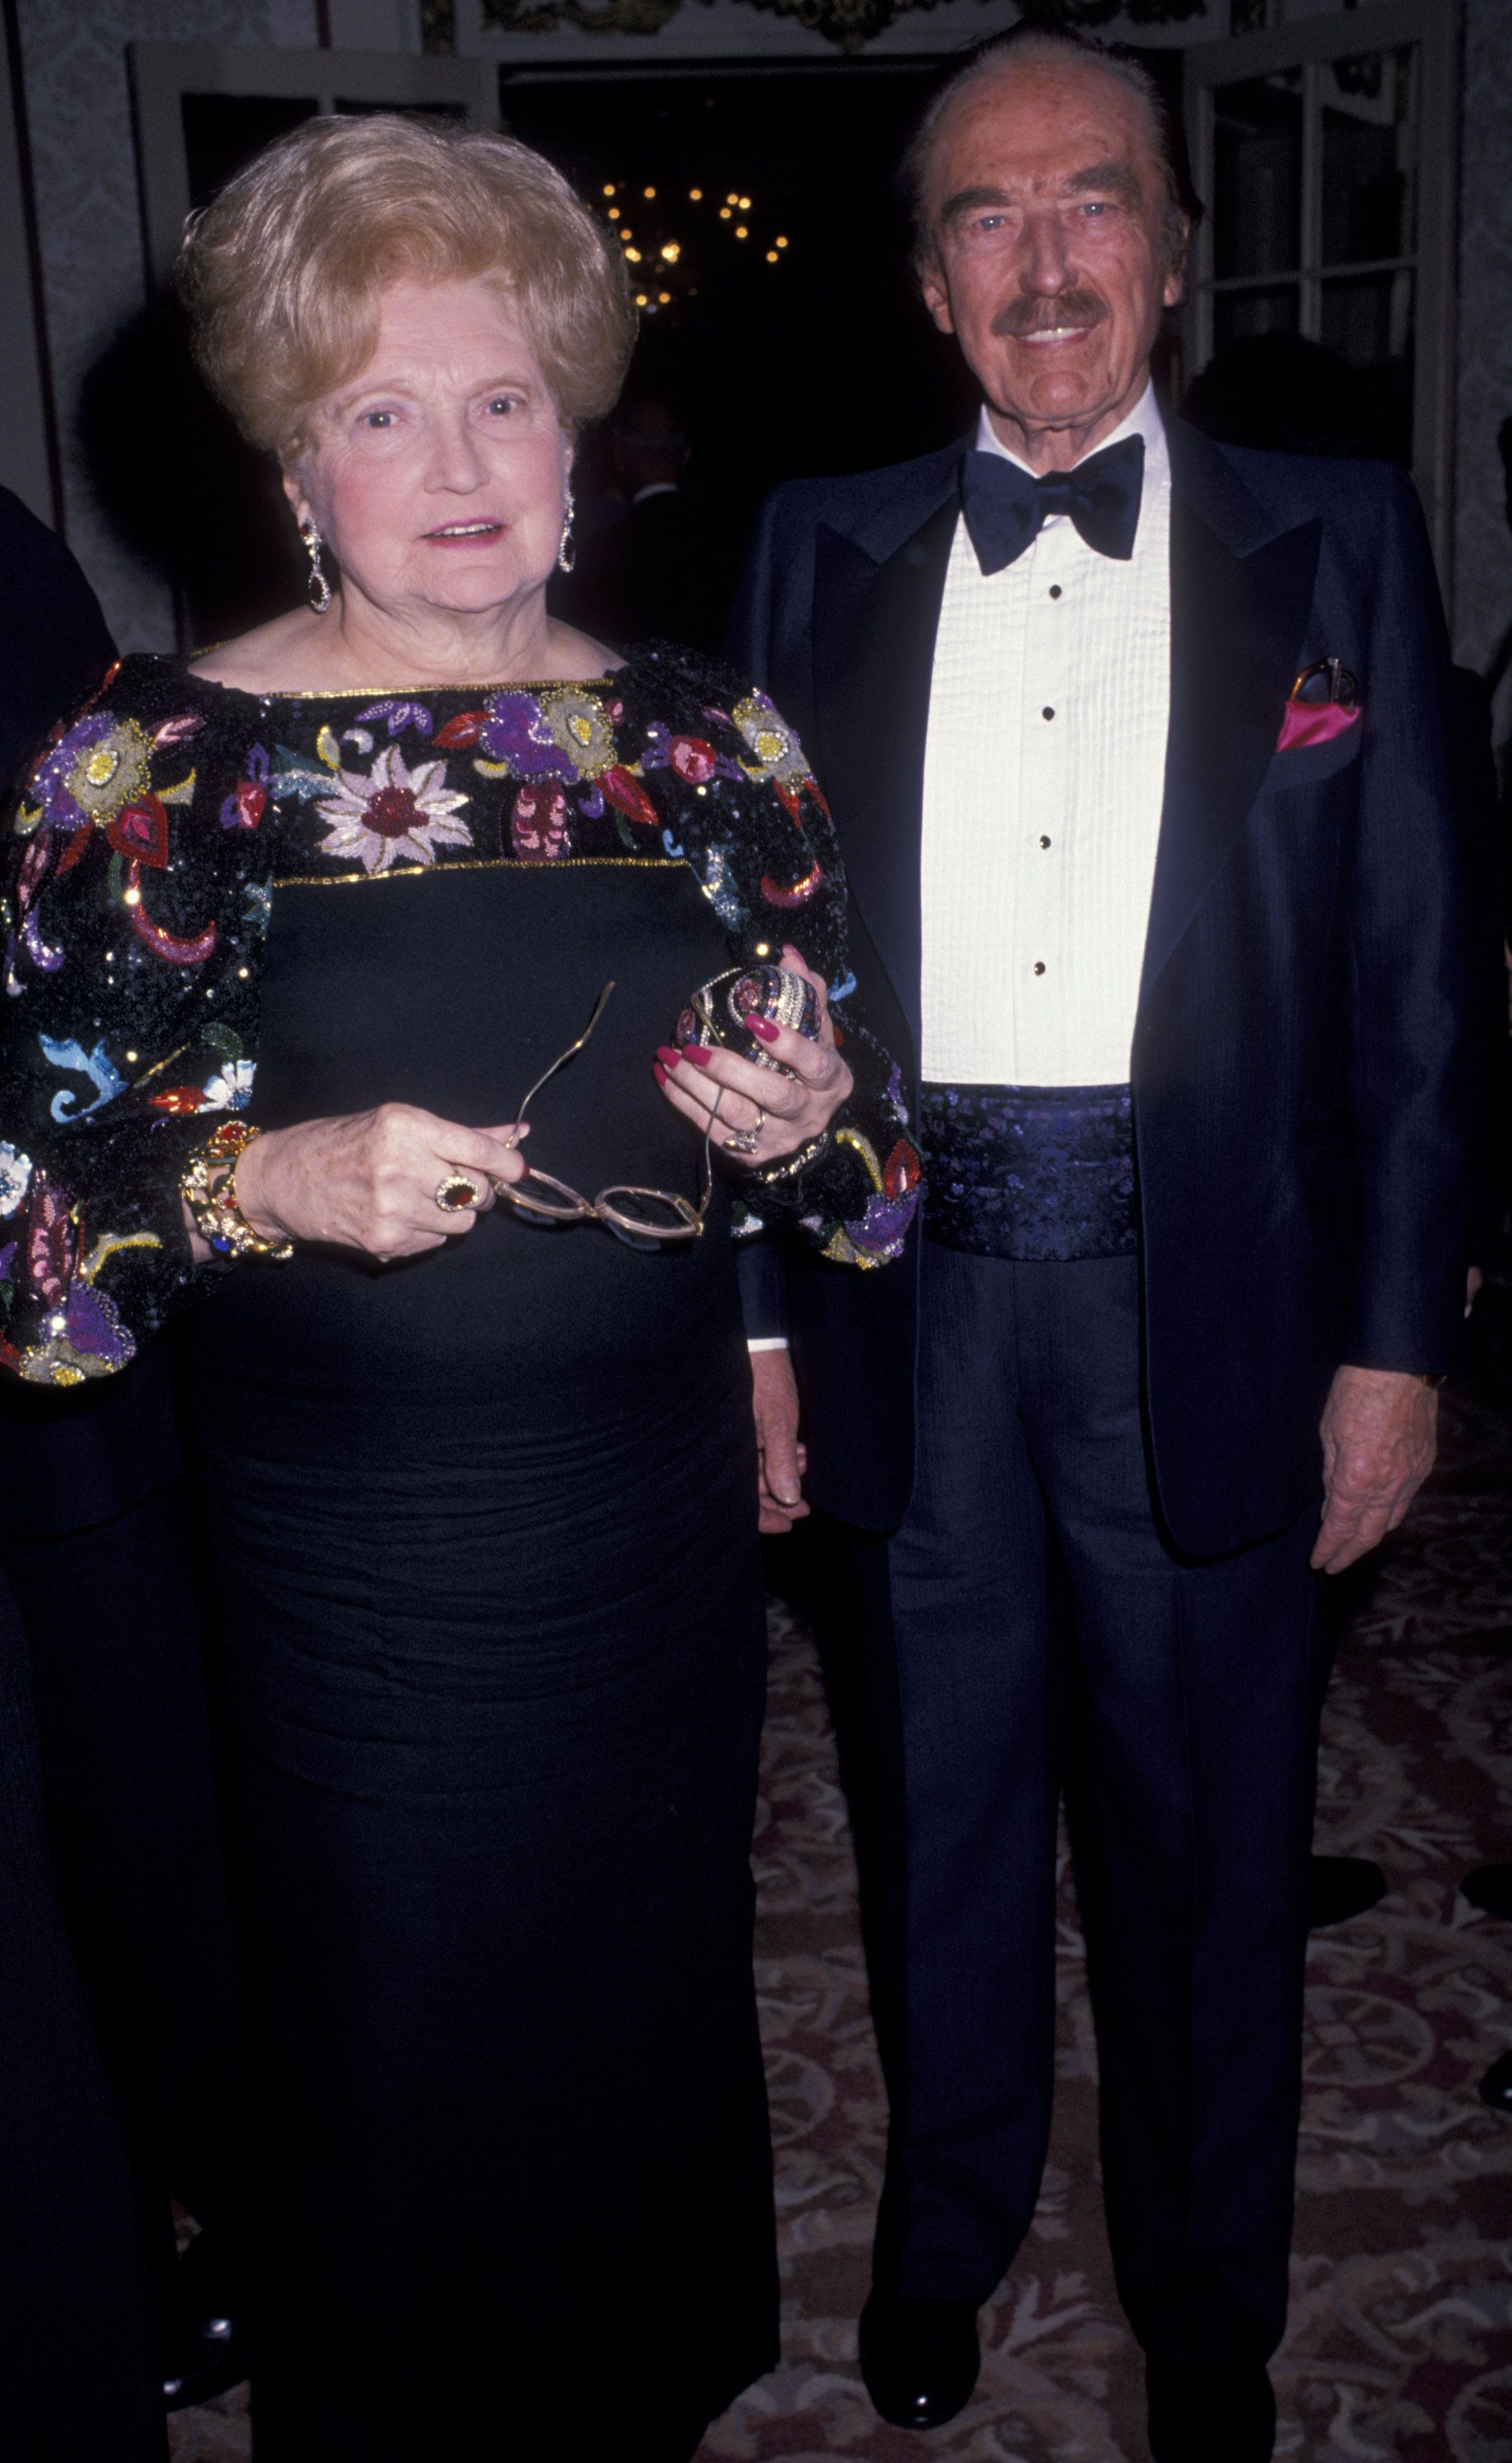 Donald Trump's parents,Mary MacLeod Trump and Fred Trump, at an awardsdinner in New York in 1999.